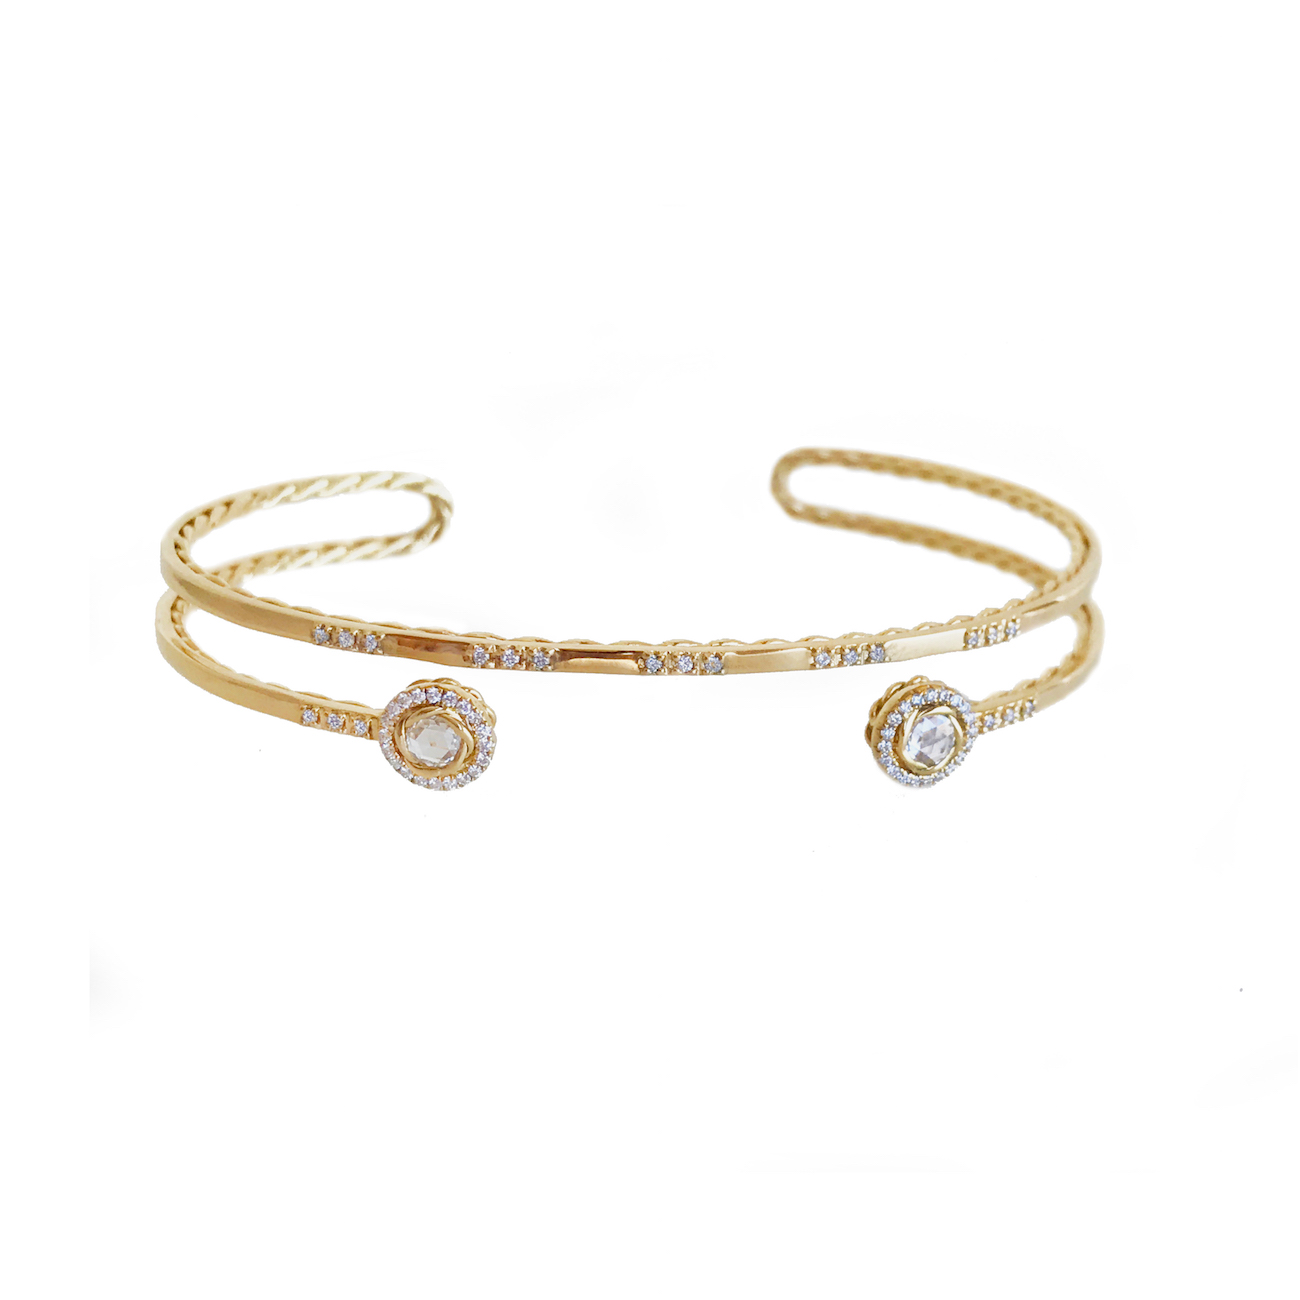 100-Double-Halo-Rose-Cut-Diamond-Twist-Lined-Turn-Back-Cuff-14k-18k-JeweLyrie_4548